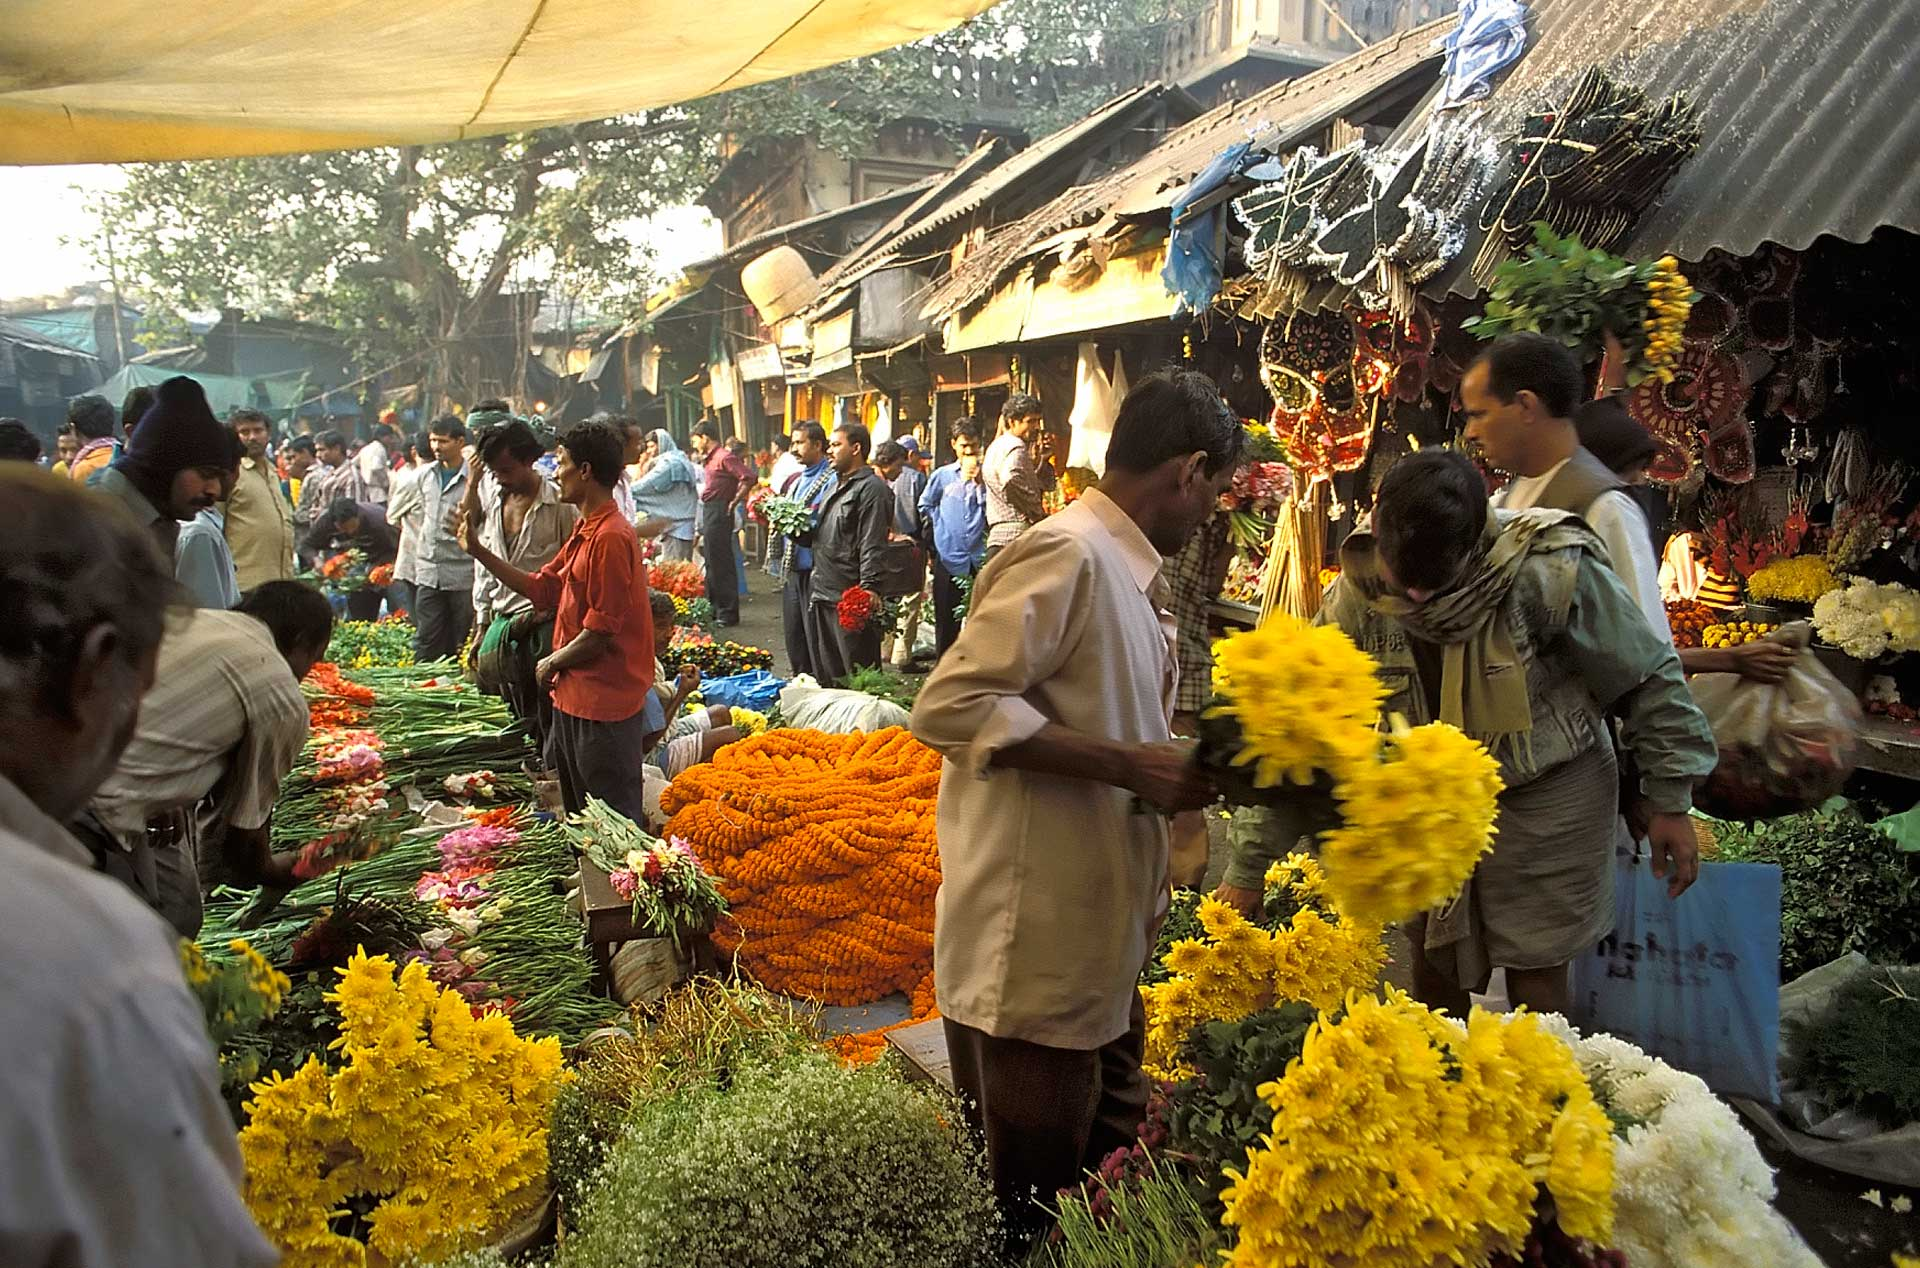 Man selling flowers at the flower market in the early morning, Kolkata, West Bengal, India